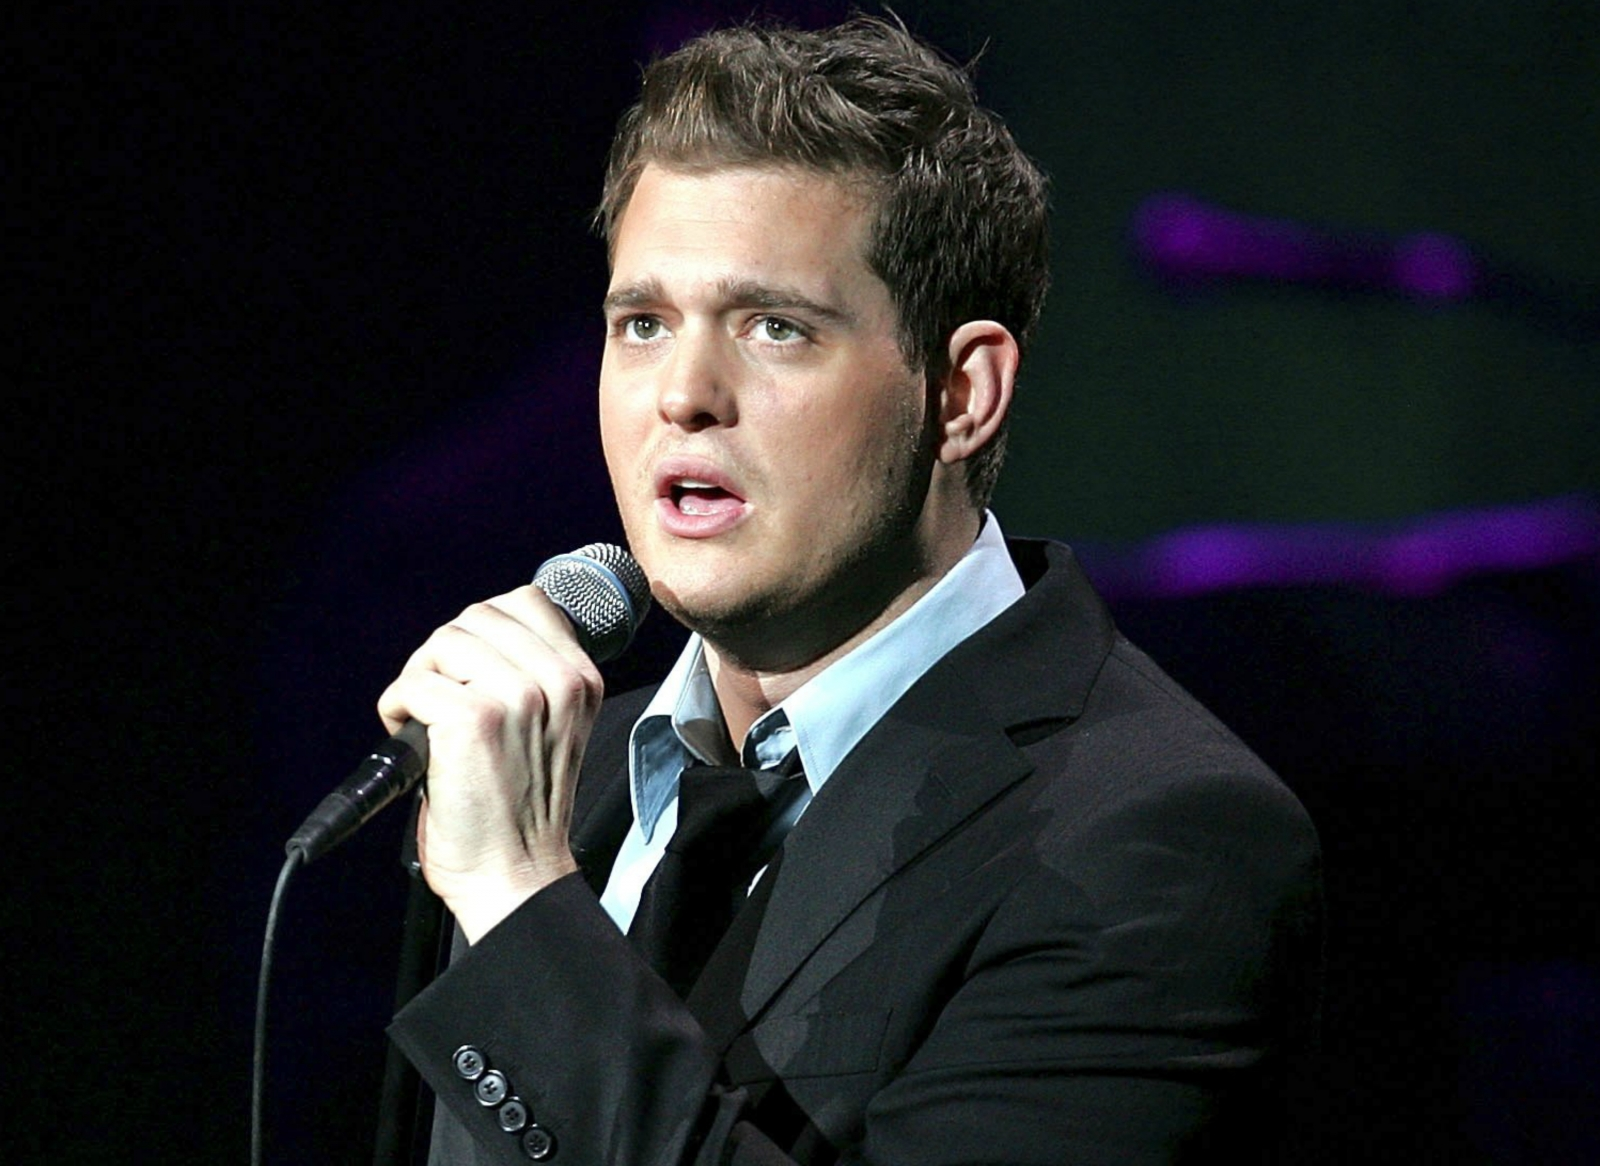 Michael Buble nudes (76 photos), Ass, Bikini, Selfie, lingerie 2006